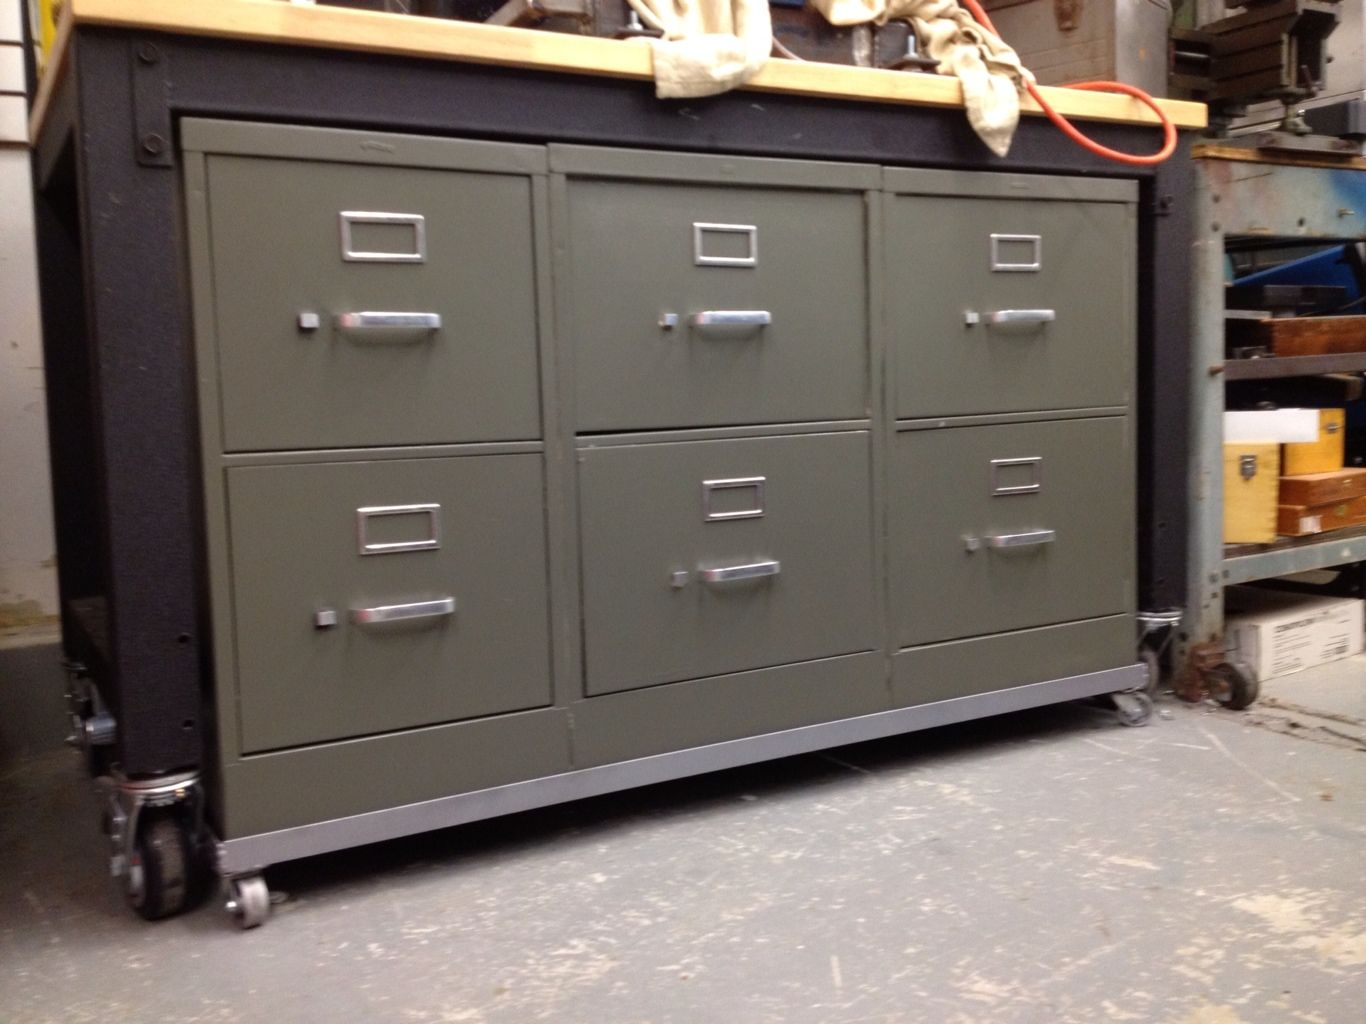 filing cabinets modified into tool work bench - Rolling Workbench